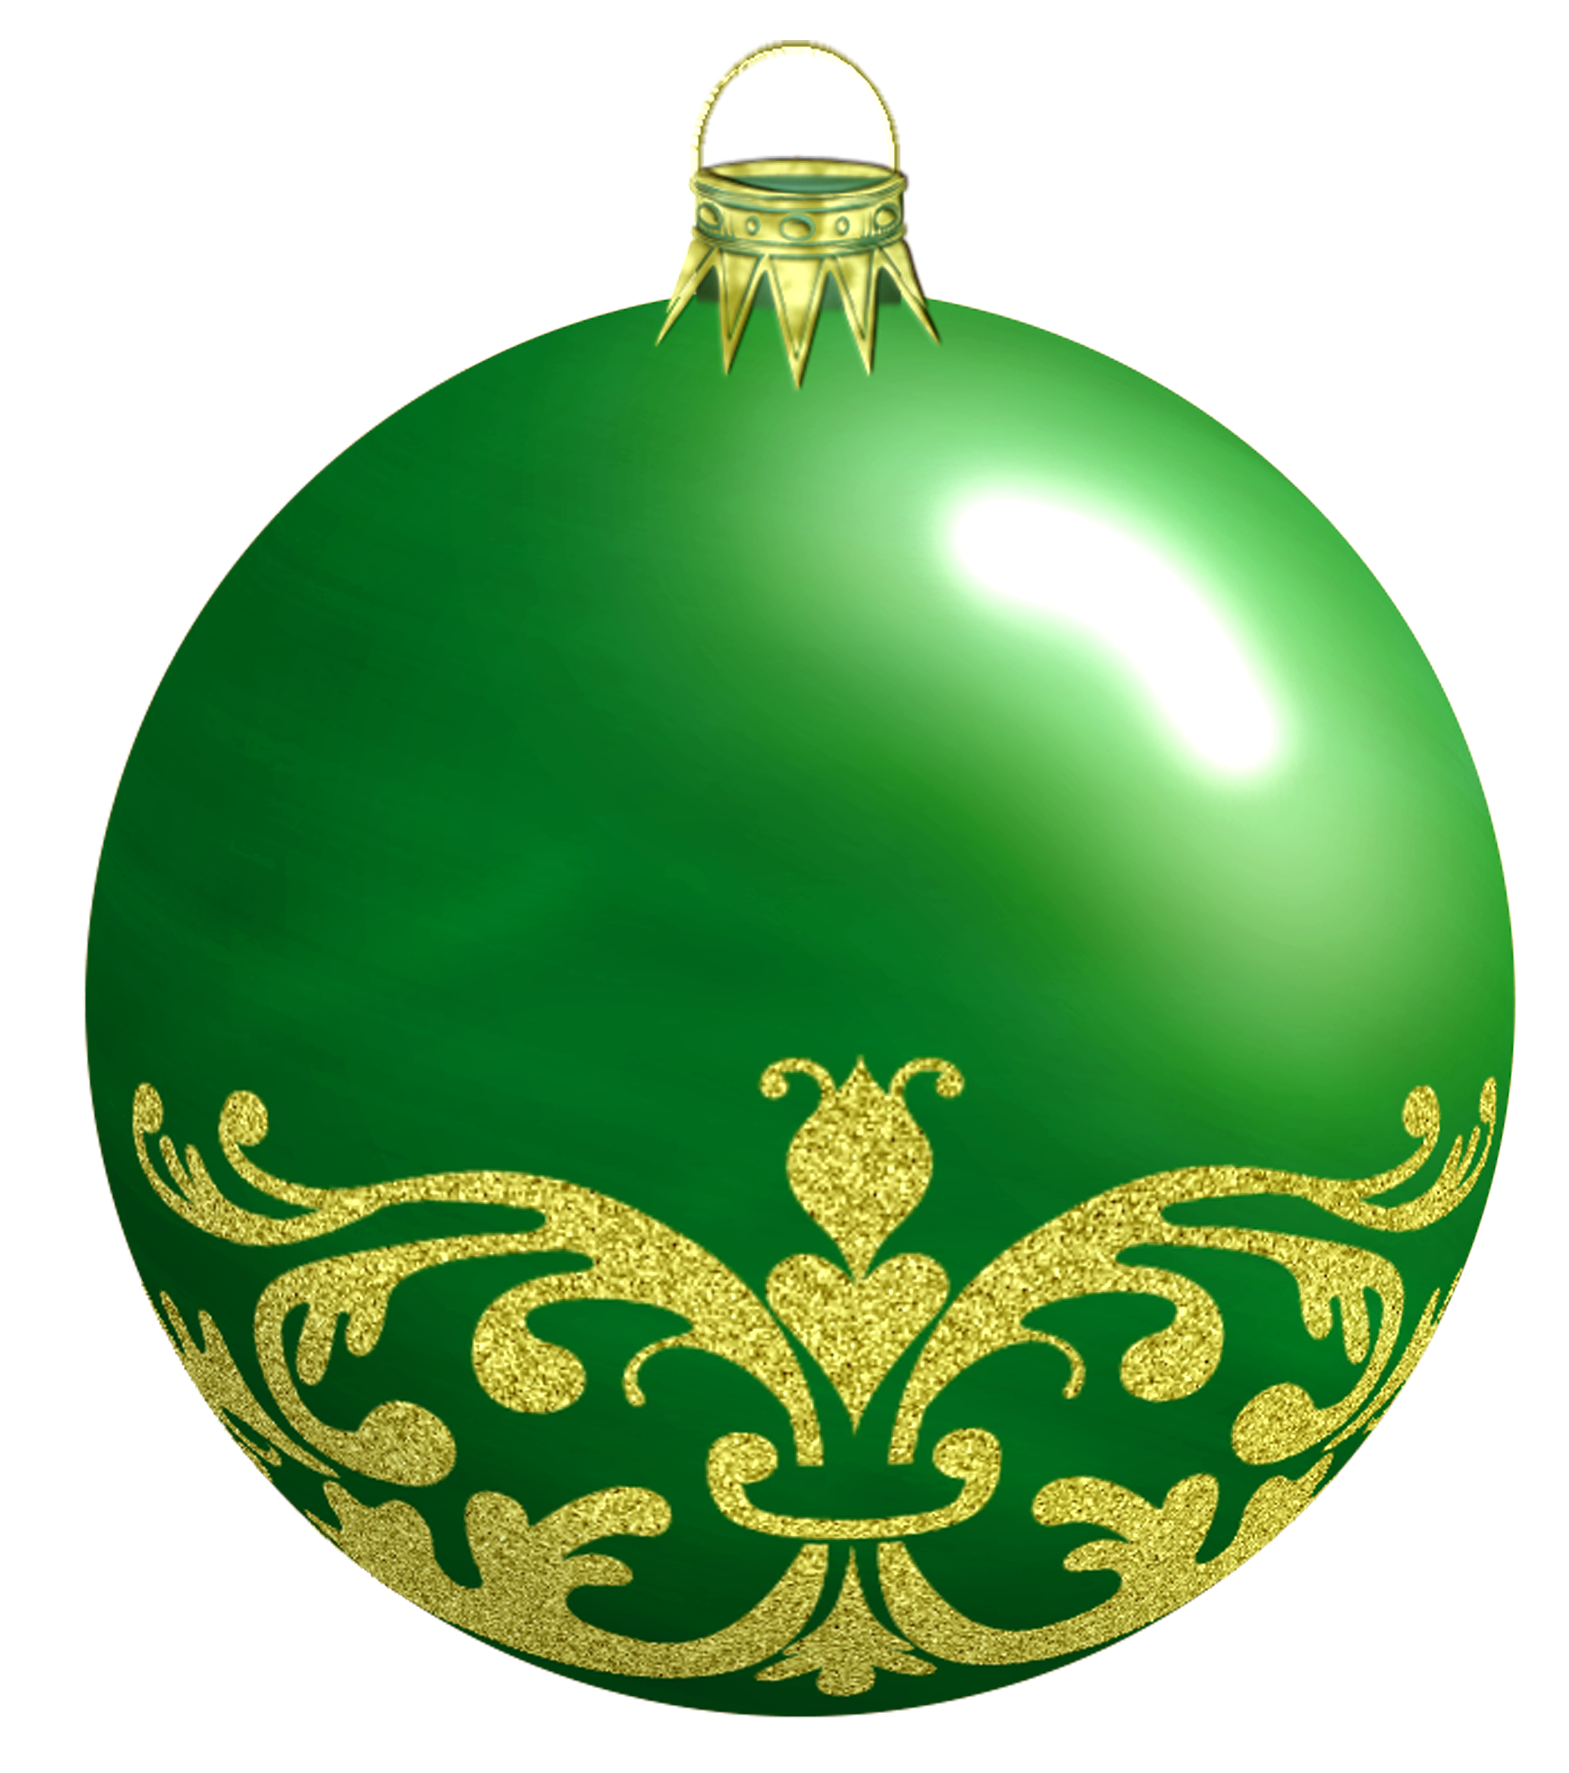 ornament christmas bauble png image transparent #37958